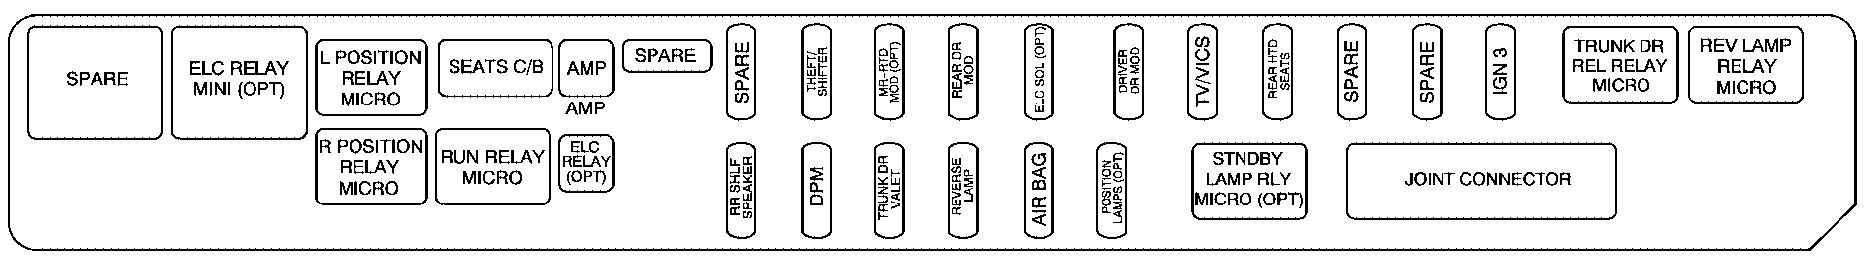 07 Cts Fuse Diagram Wiring Diagrams Element Element Miglioribanche It